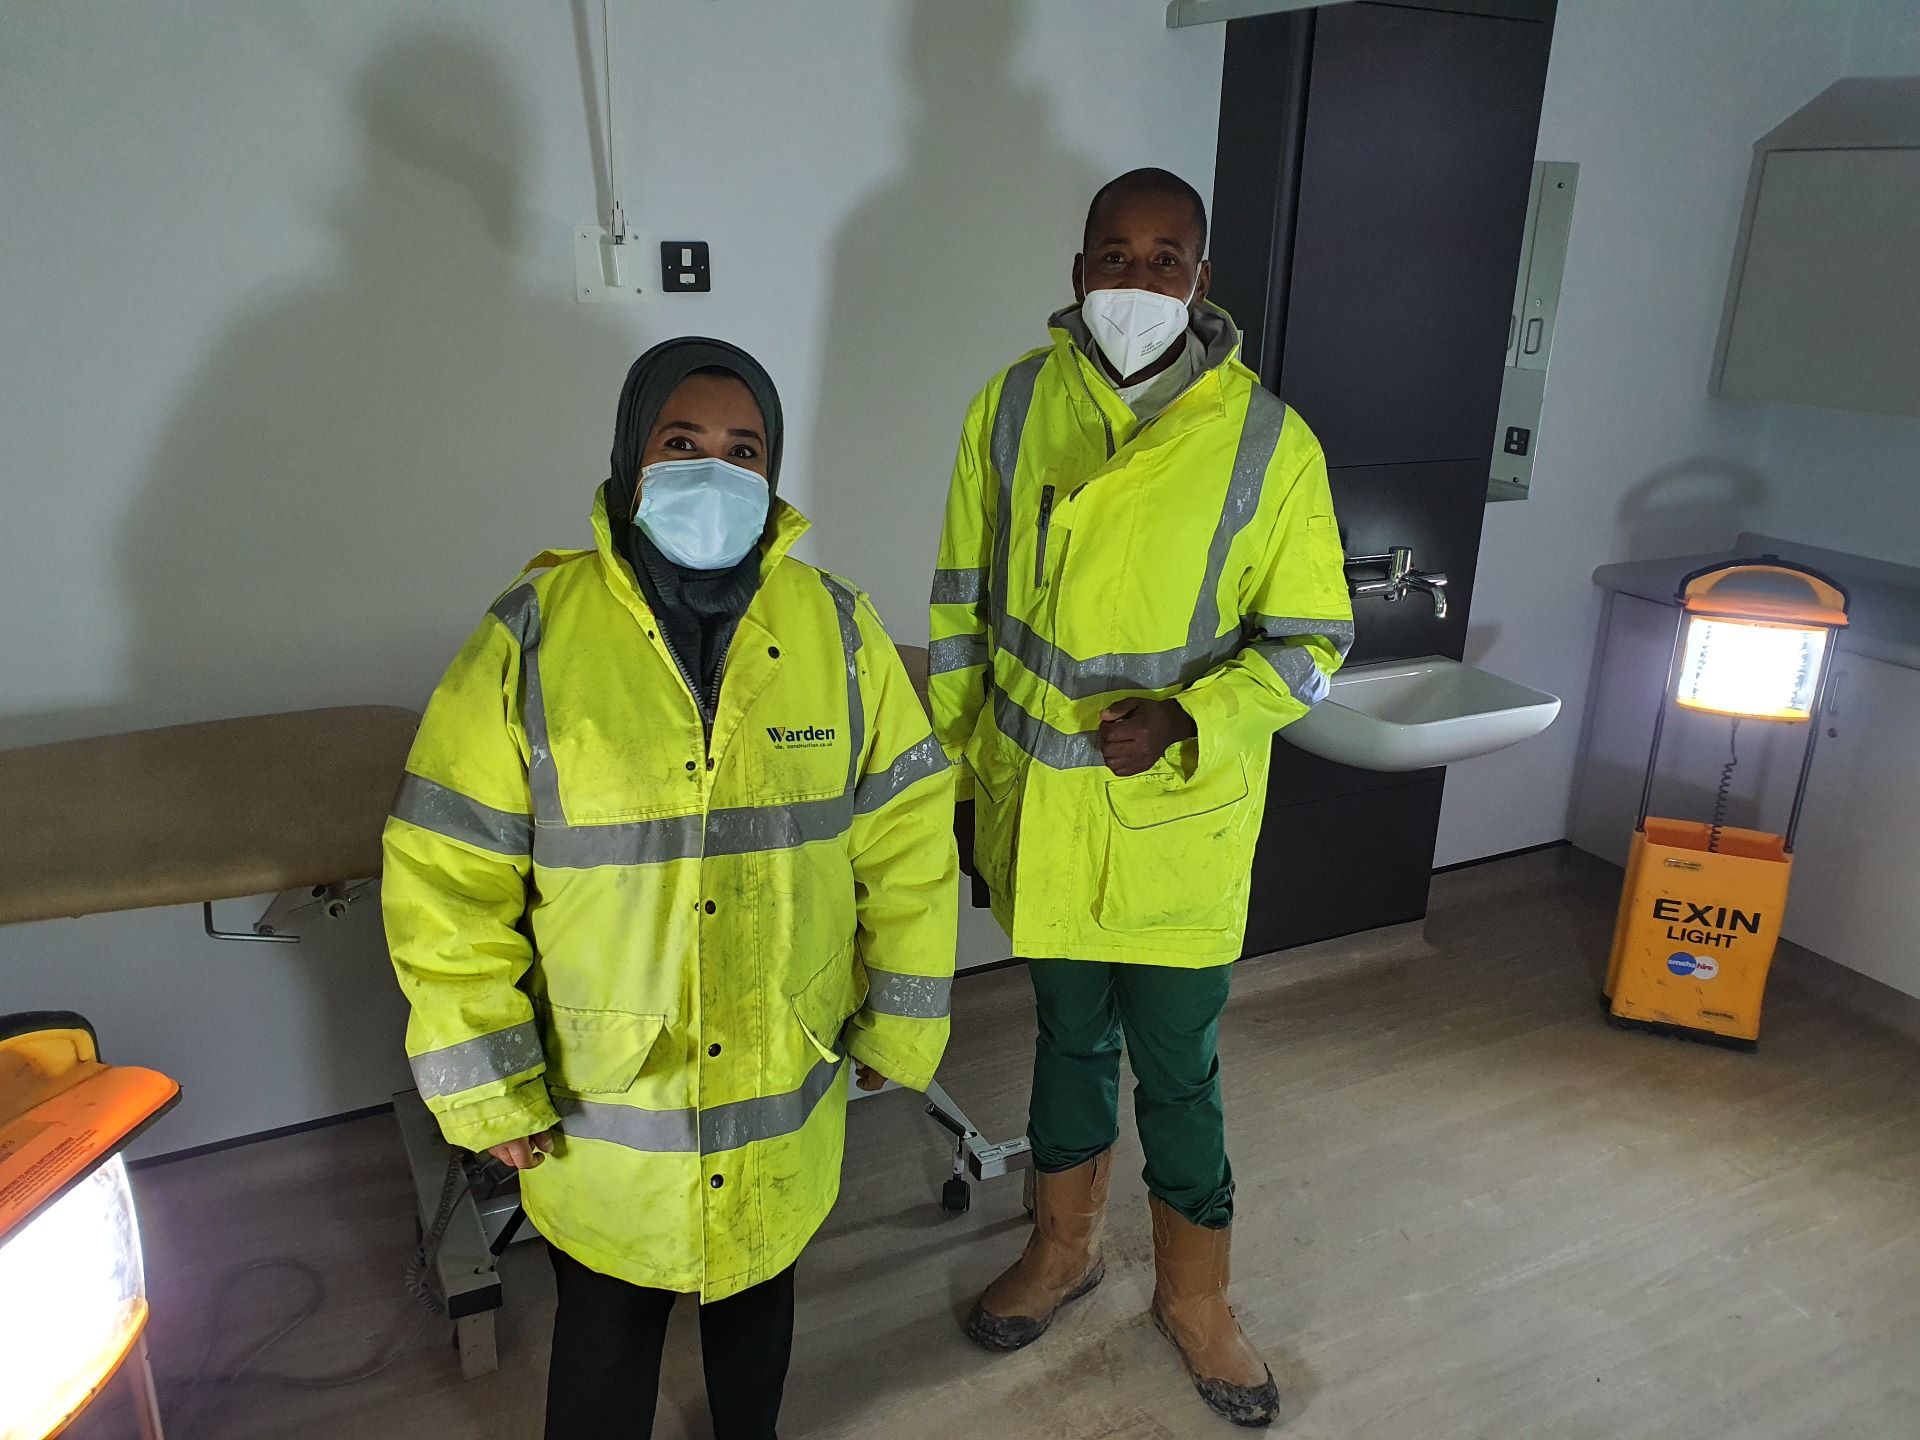 General Practitioners wearing high visibility jacket and face masks